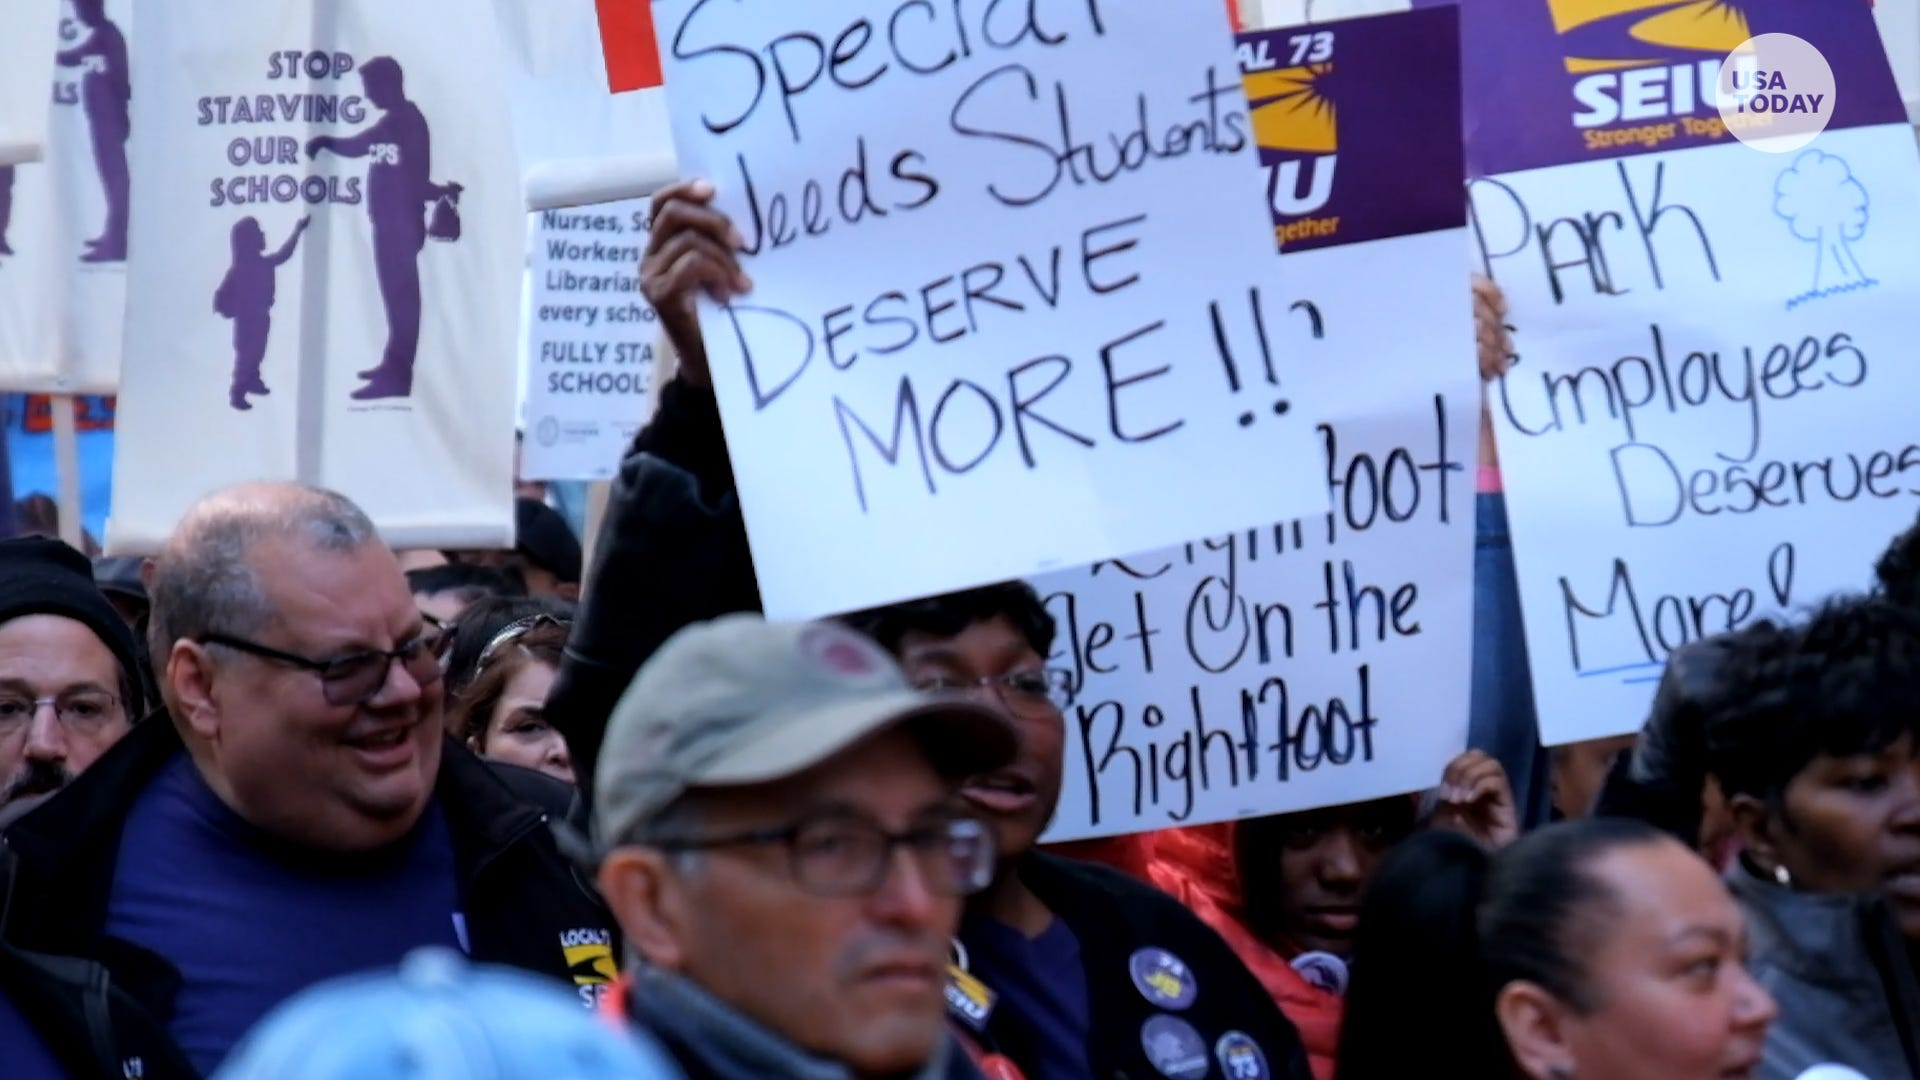 The next major teacher strike hits Chicago over failure to agree on a new contract